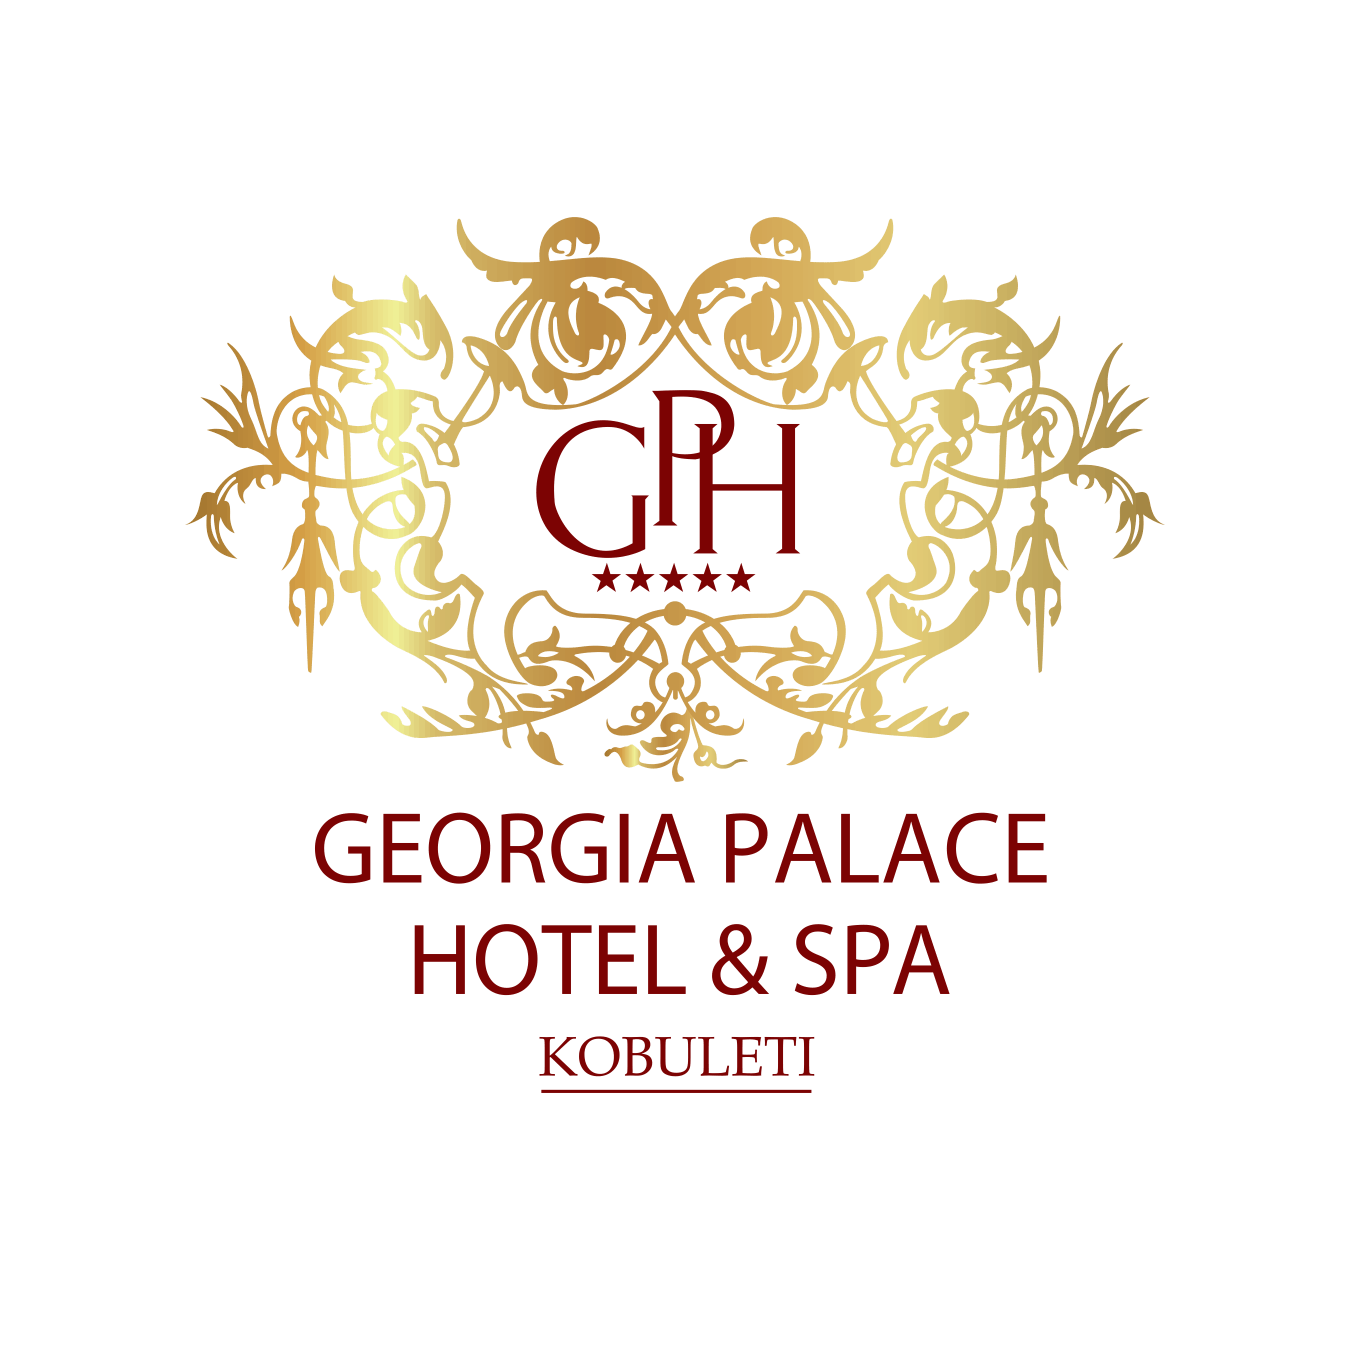 Georgia Palace Hotel & SPA Kobuleti